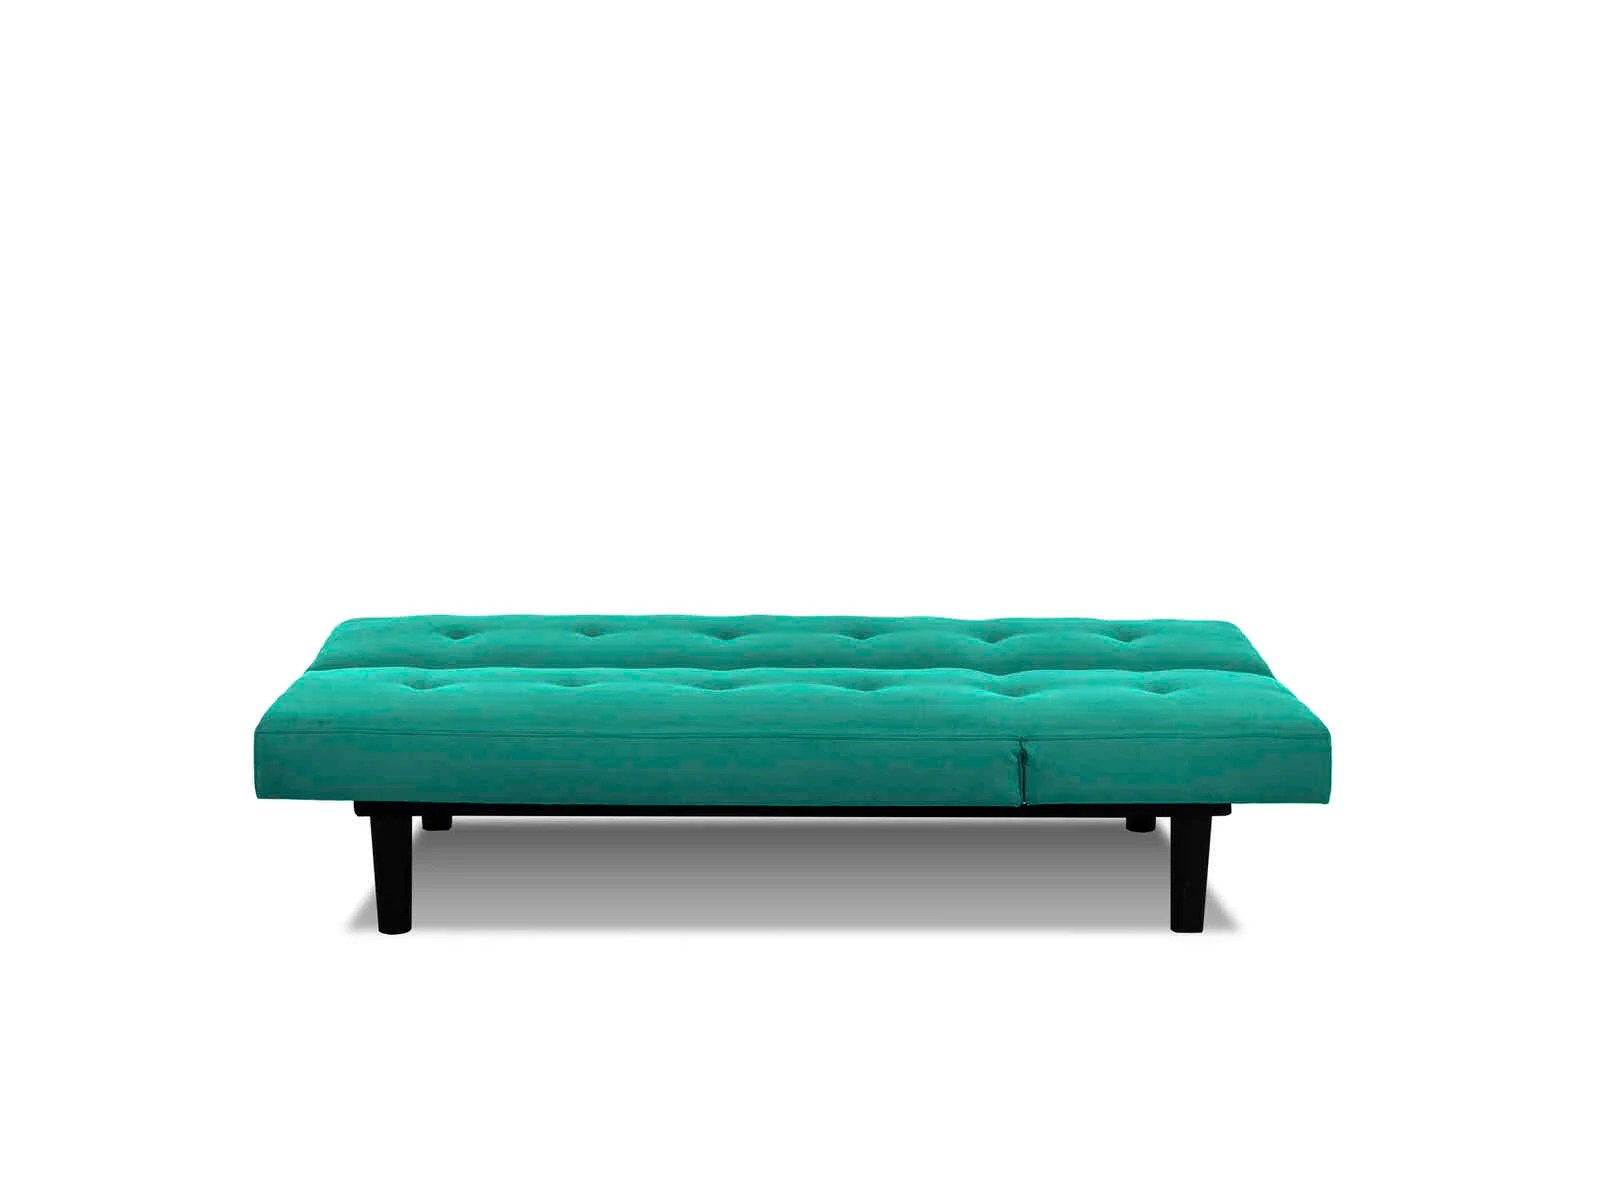 convertible futon sofa bed lounger corinthian mini teal by serta lifestyle